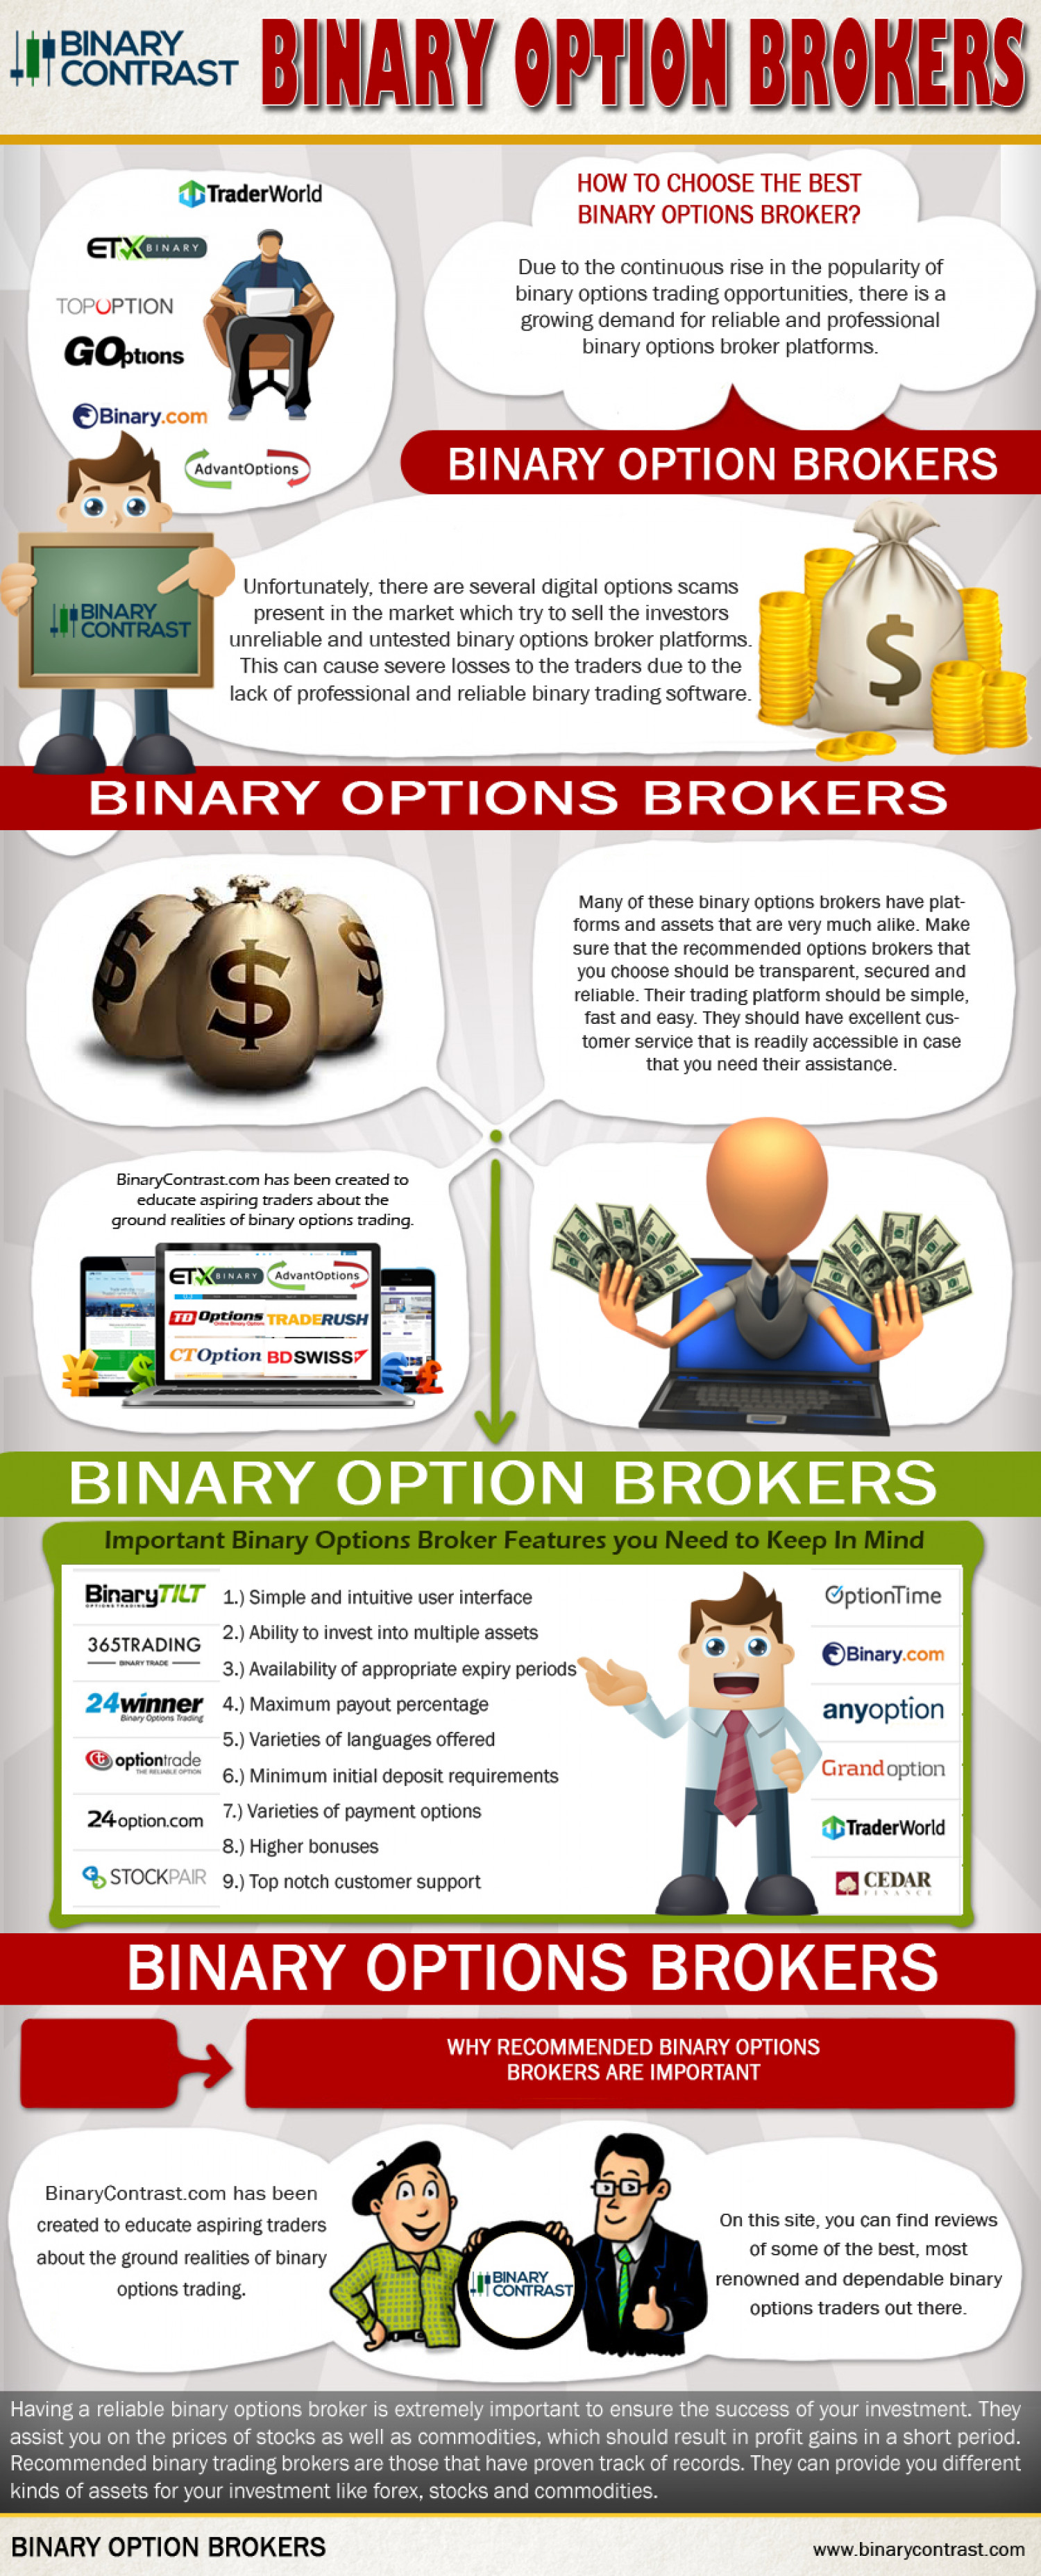 Pair options trading brokers